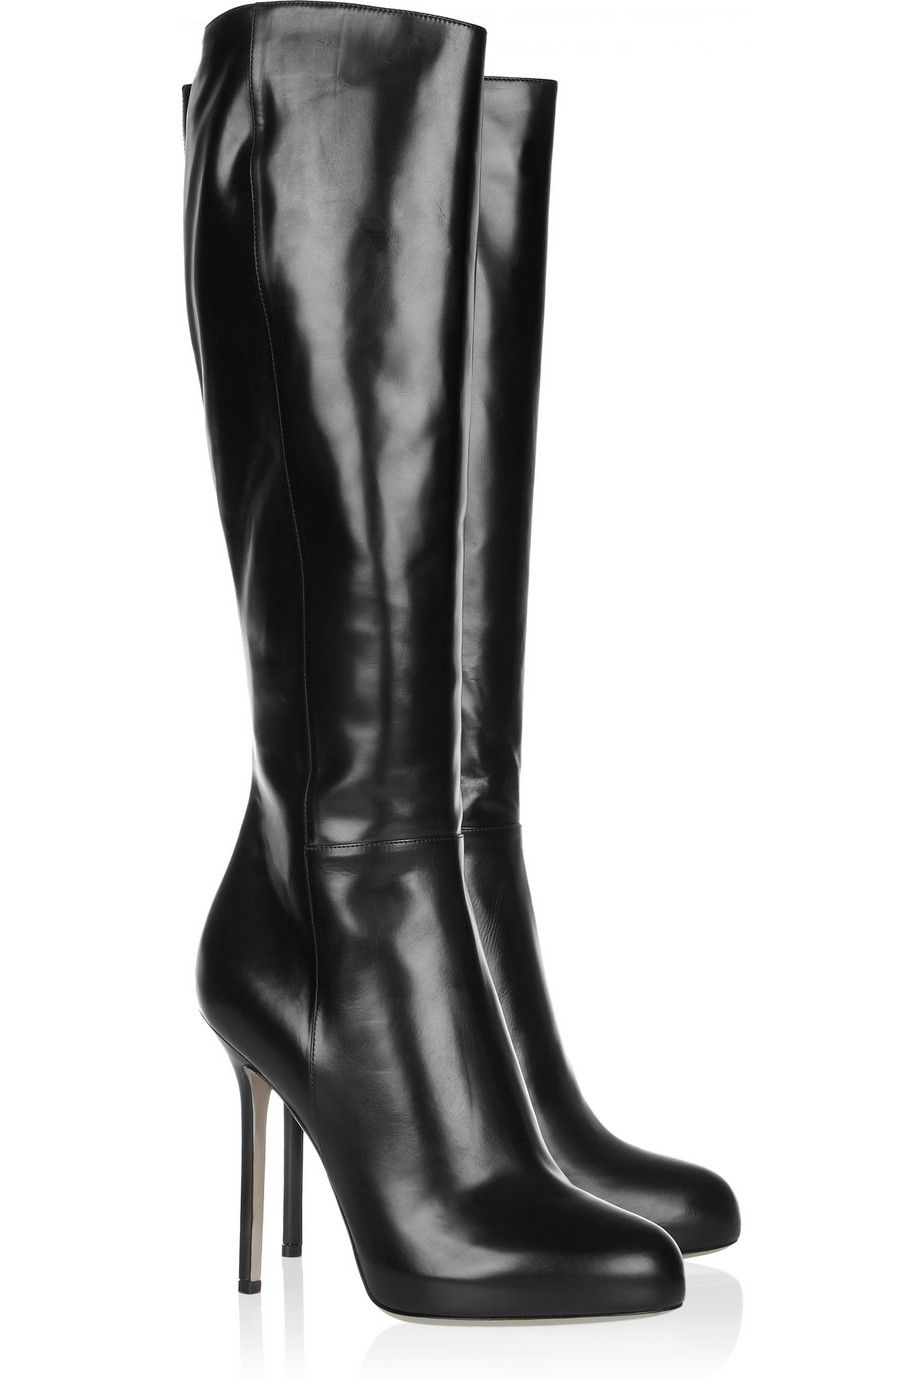 The biker chic black leather boots (by Sergio Rossi) are timeless ...